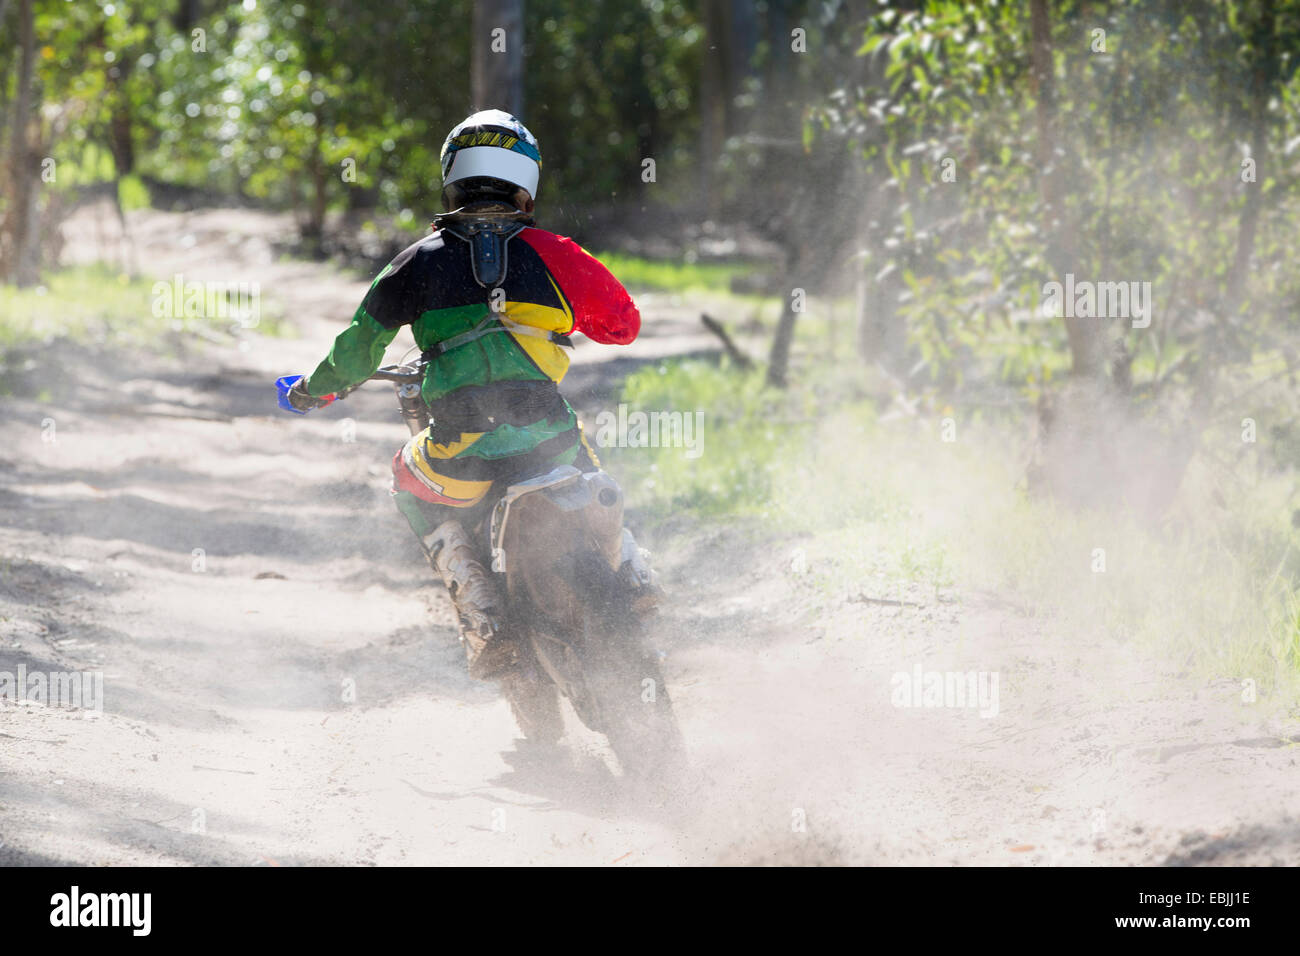 Rear view of young male motocross rider racing on forest track - Stock Image